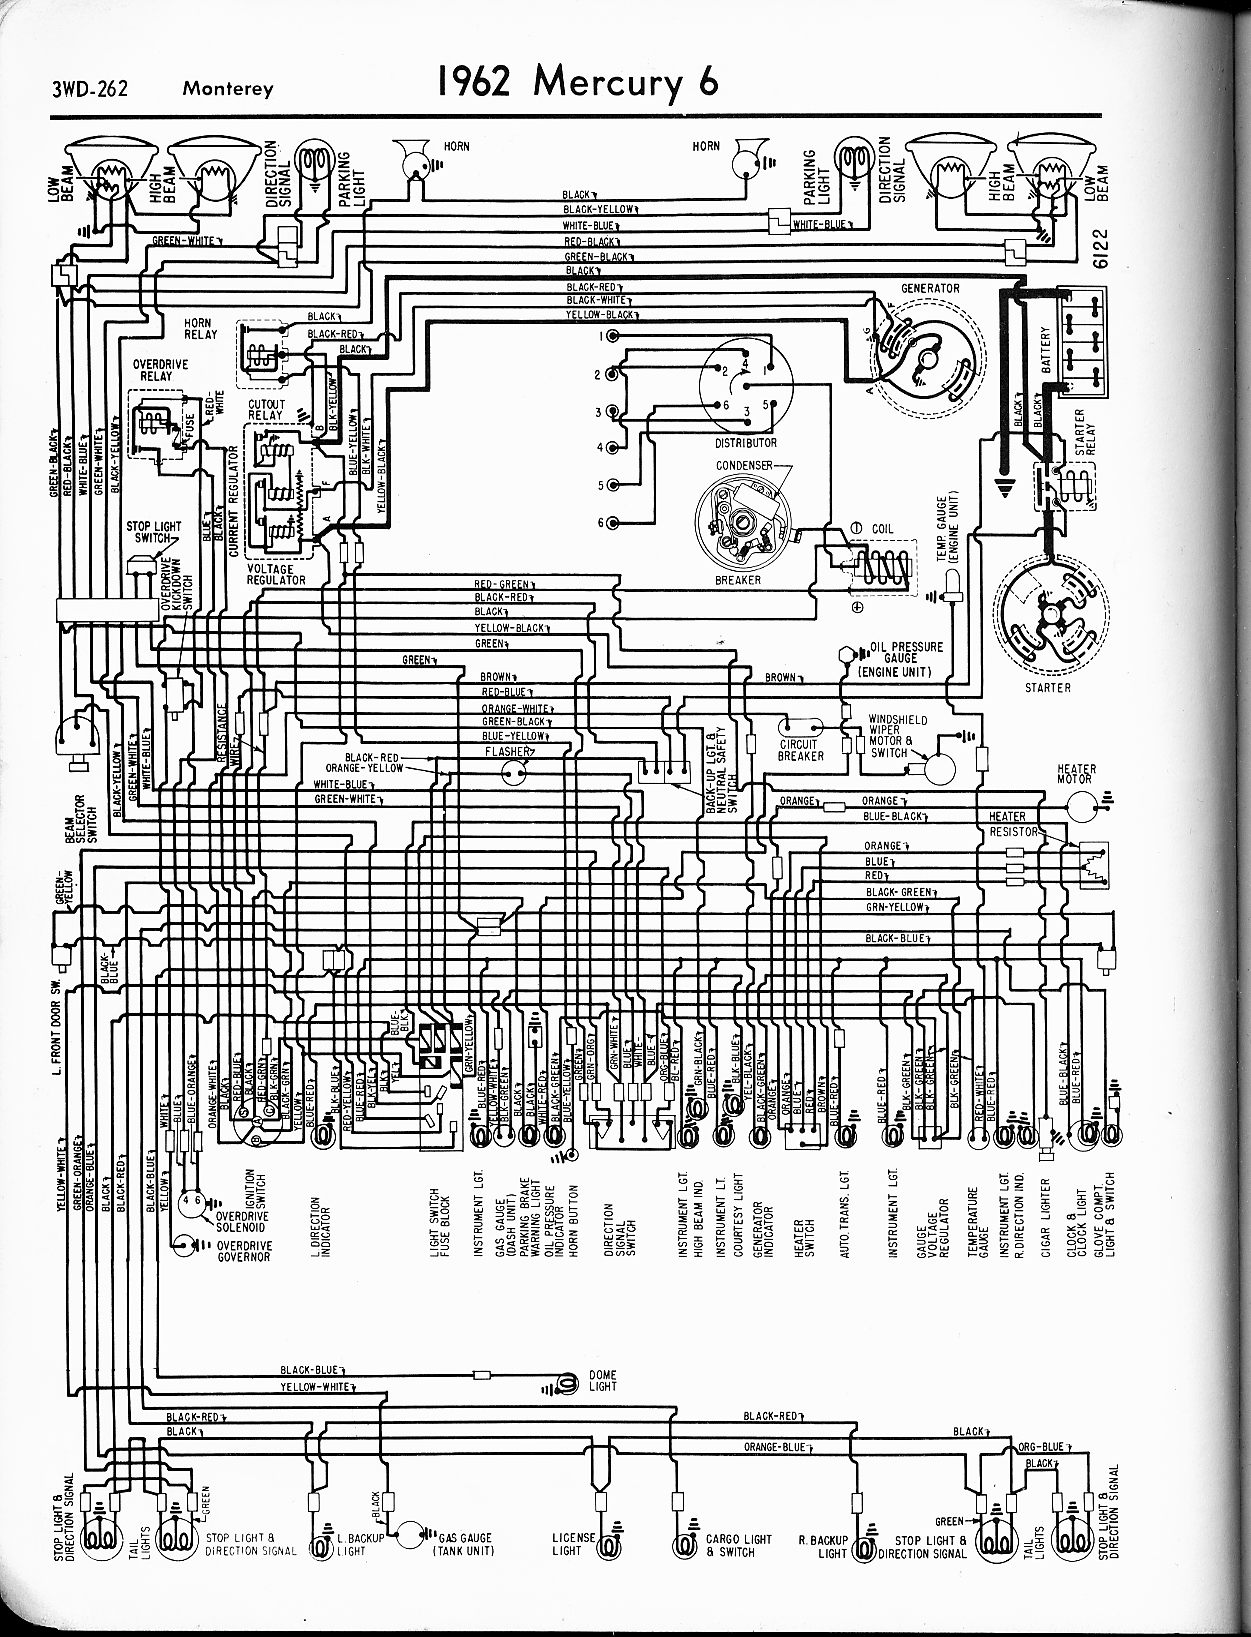 Fuse Box Wiring Diagram 1966 | Wiring Diagram  Falcon Wiring Diagram on 1963 falcon speedometer, 1963 falcon exhaust, 1963 falcon brakes, 1963 falcon wheels, 1963 falcon transmission, 1963 falcon battery, 1963 falcon frame, 1963 falcon steering, 1963 falcon ignition coil, 1963 falcon seats, 1963 falcon cylinder head, 1963 falcon suspension, 1963 falcon radio, 1963 falcon distributor, 1963 falcon fuel pump, 1963 falcon brochure, 1963 falcon ford, 1963 falcon specifications, 1963 falcon engine, 1963 falcon radiator,